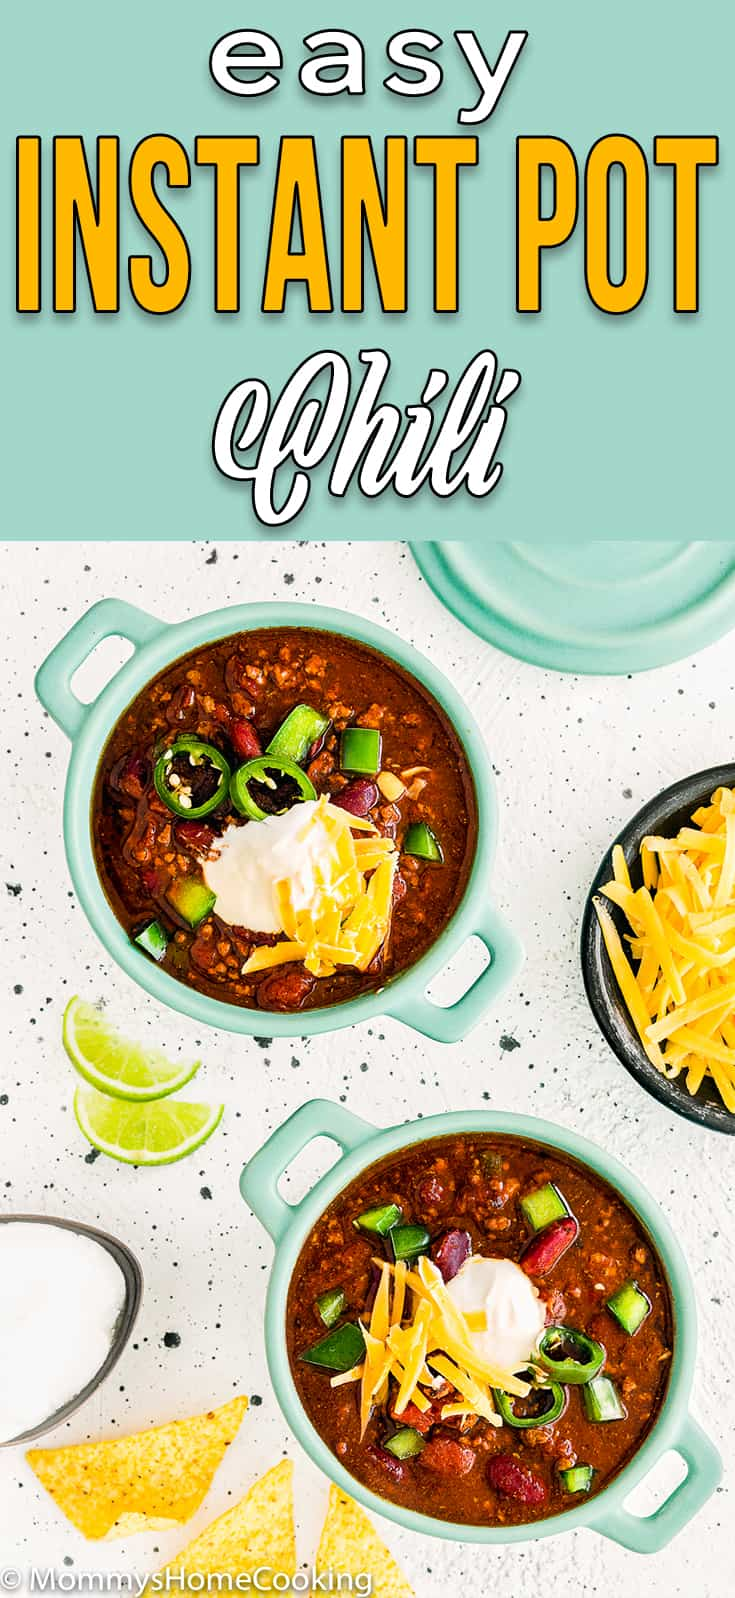 two bowls of easy instant pot chili topped with sliced jalapeño, sour cream and cheese with descriptive text